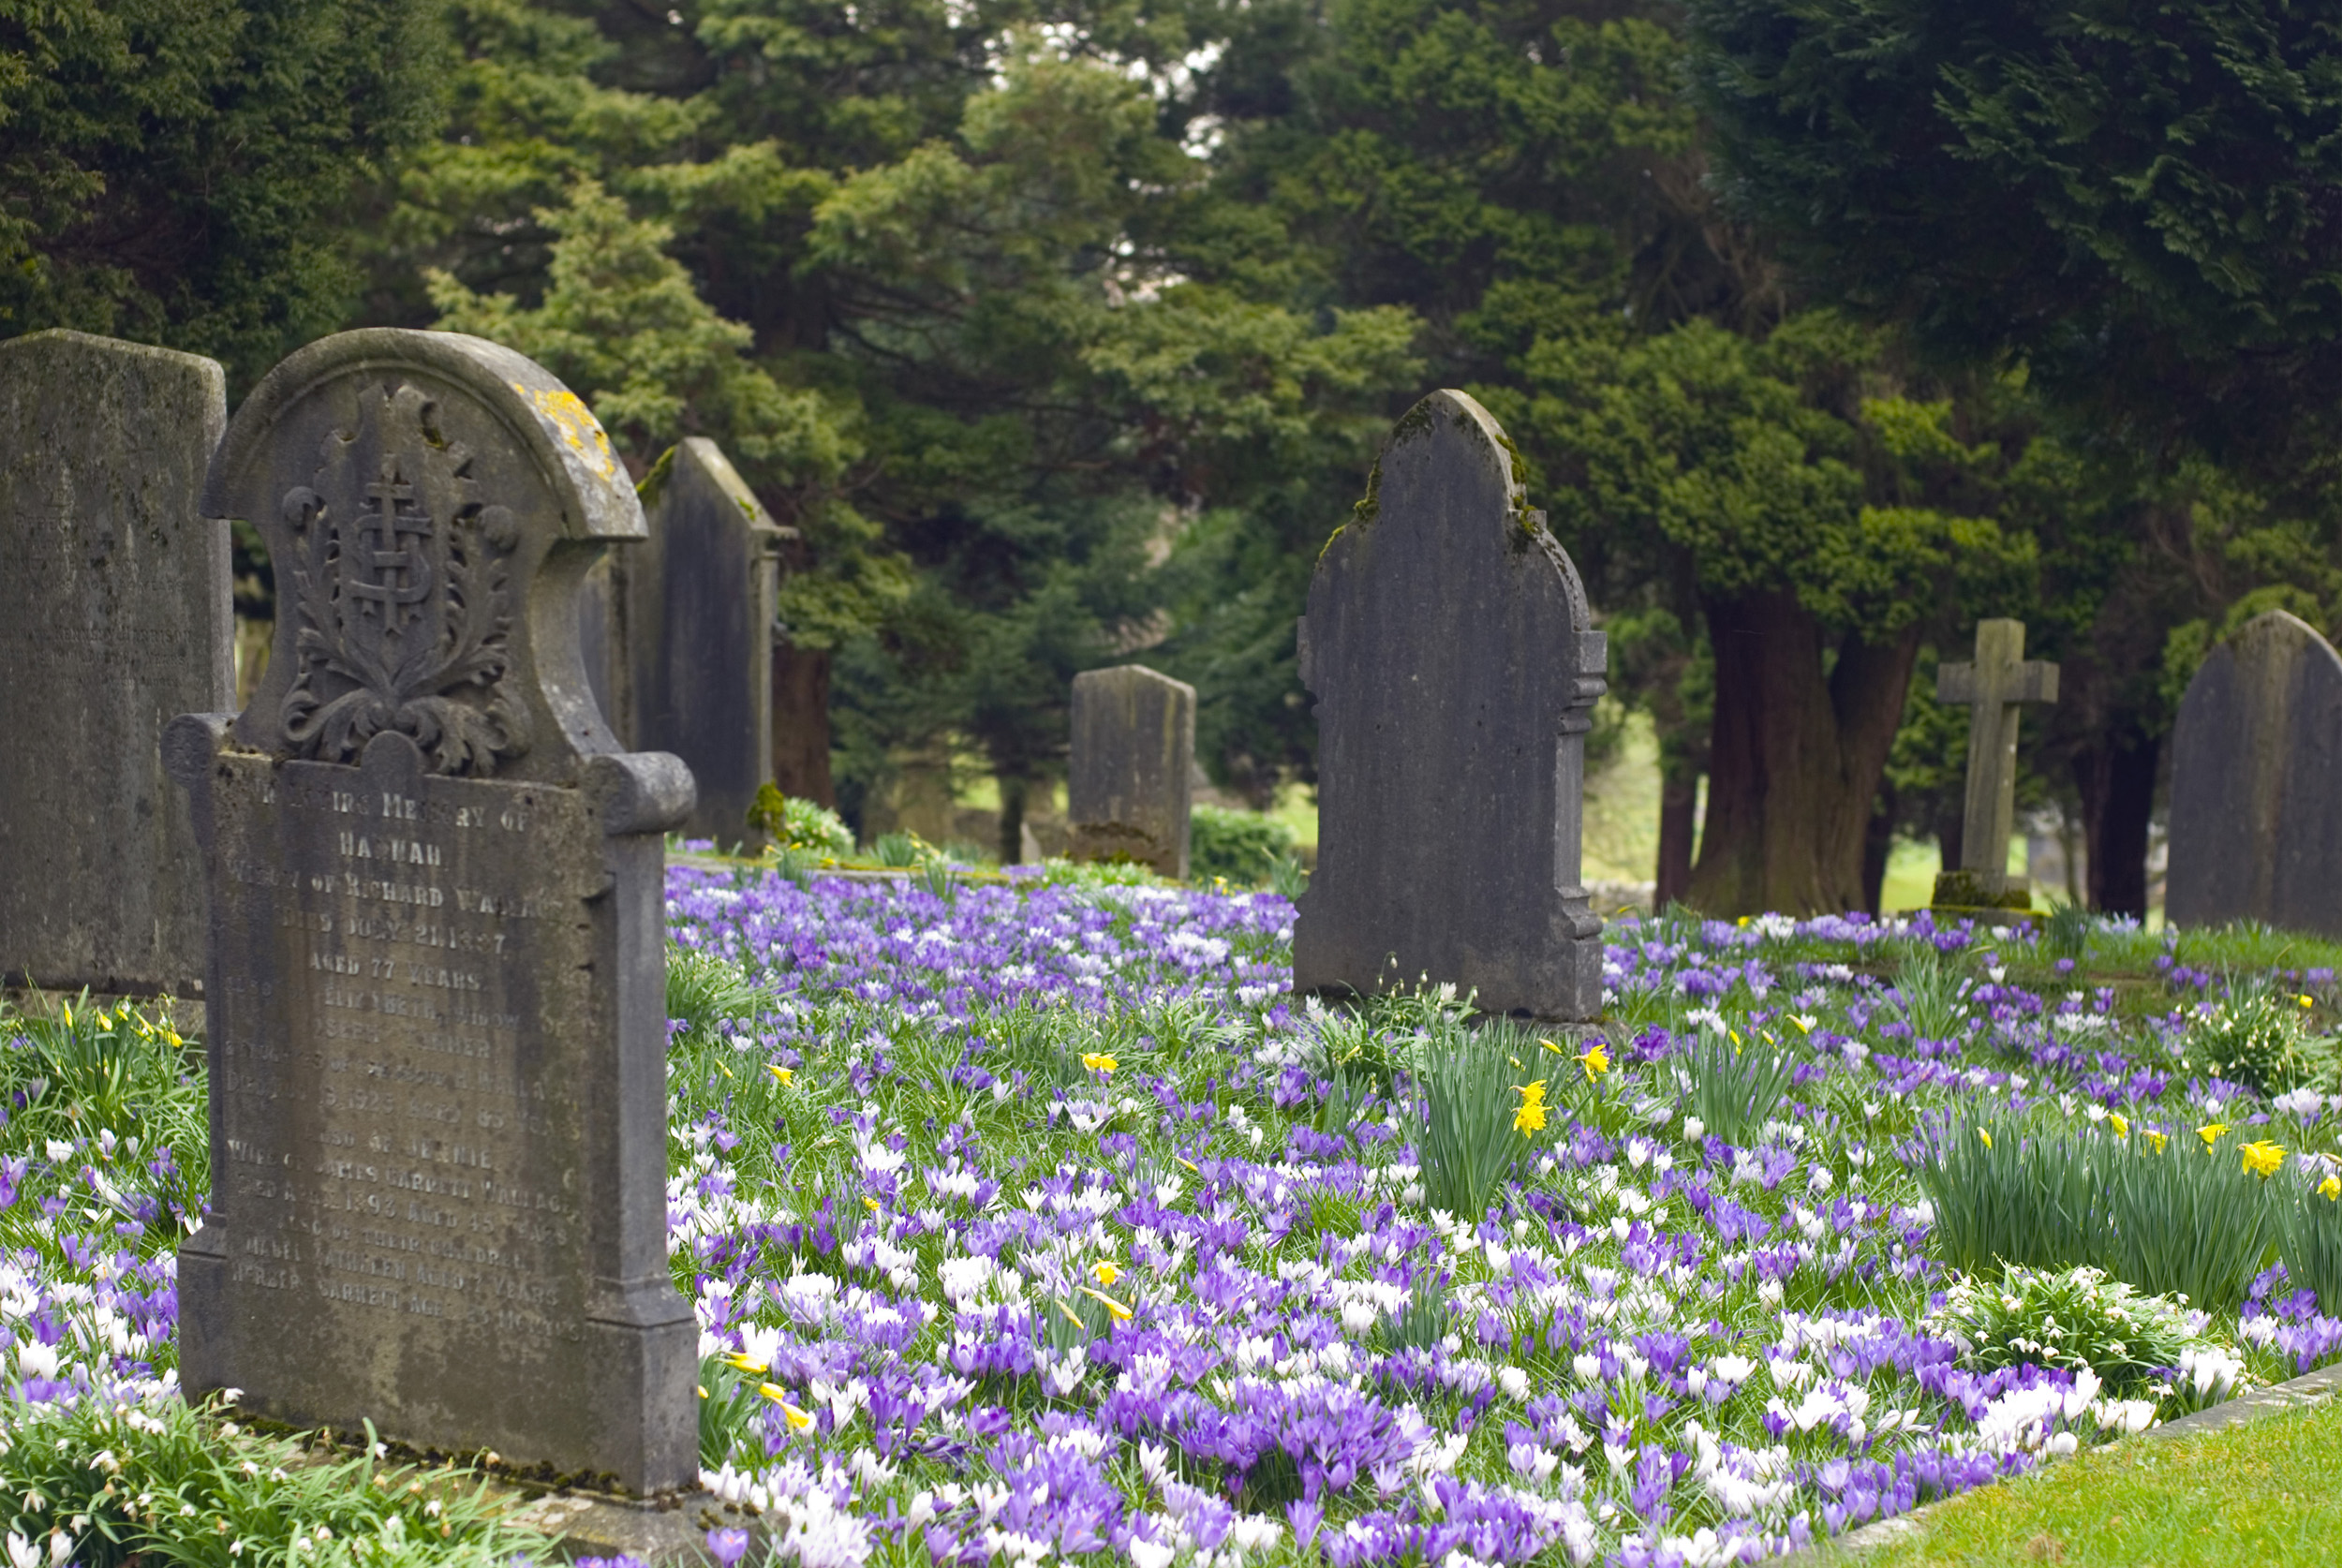 churchyard_easter.jpg - Colourful spring churchyard at Easter with blue and white crocuses and spring flowers carpeting the grass amongst the gravestones